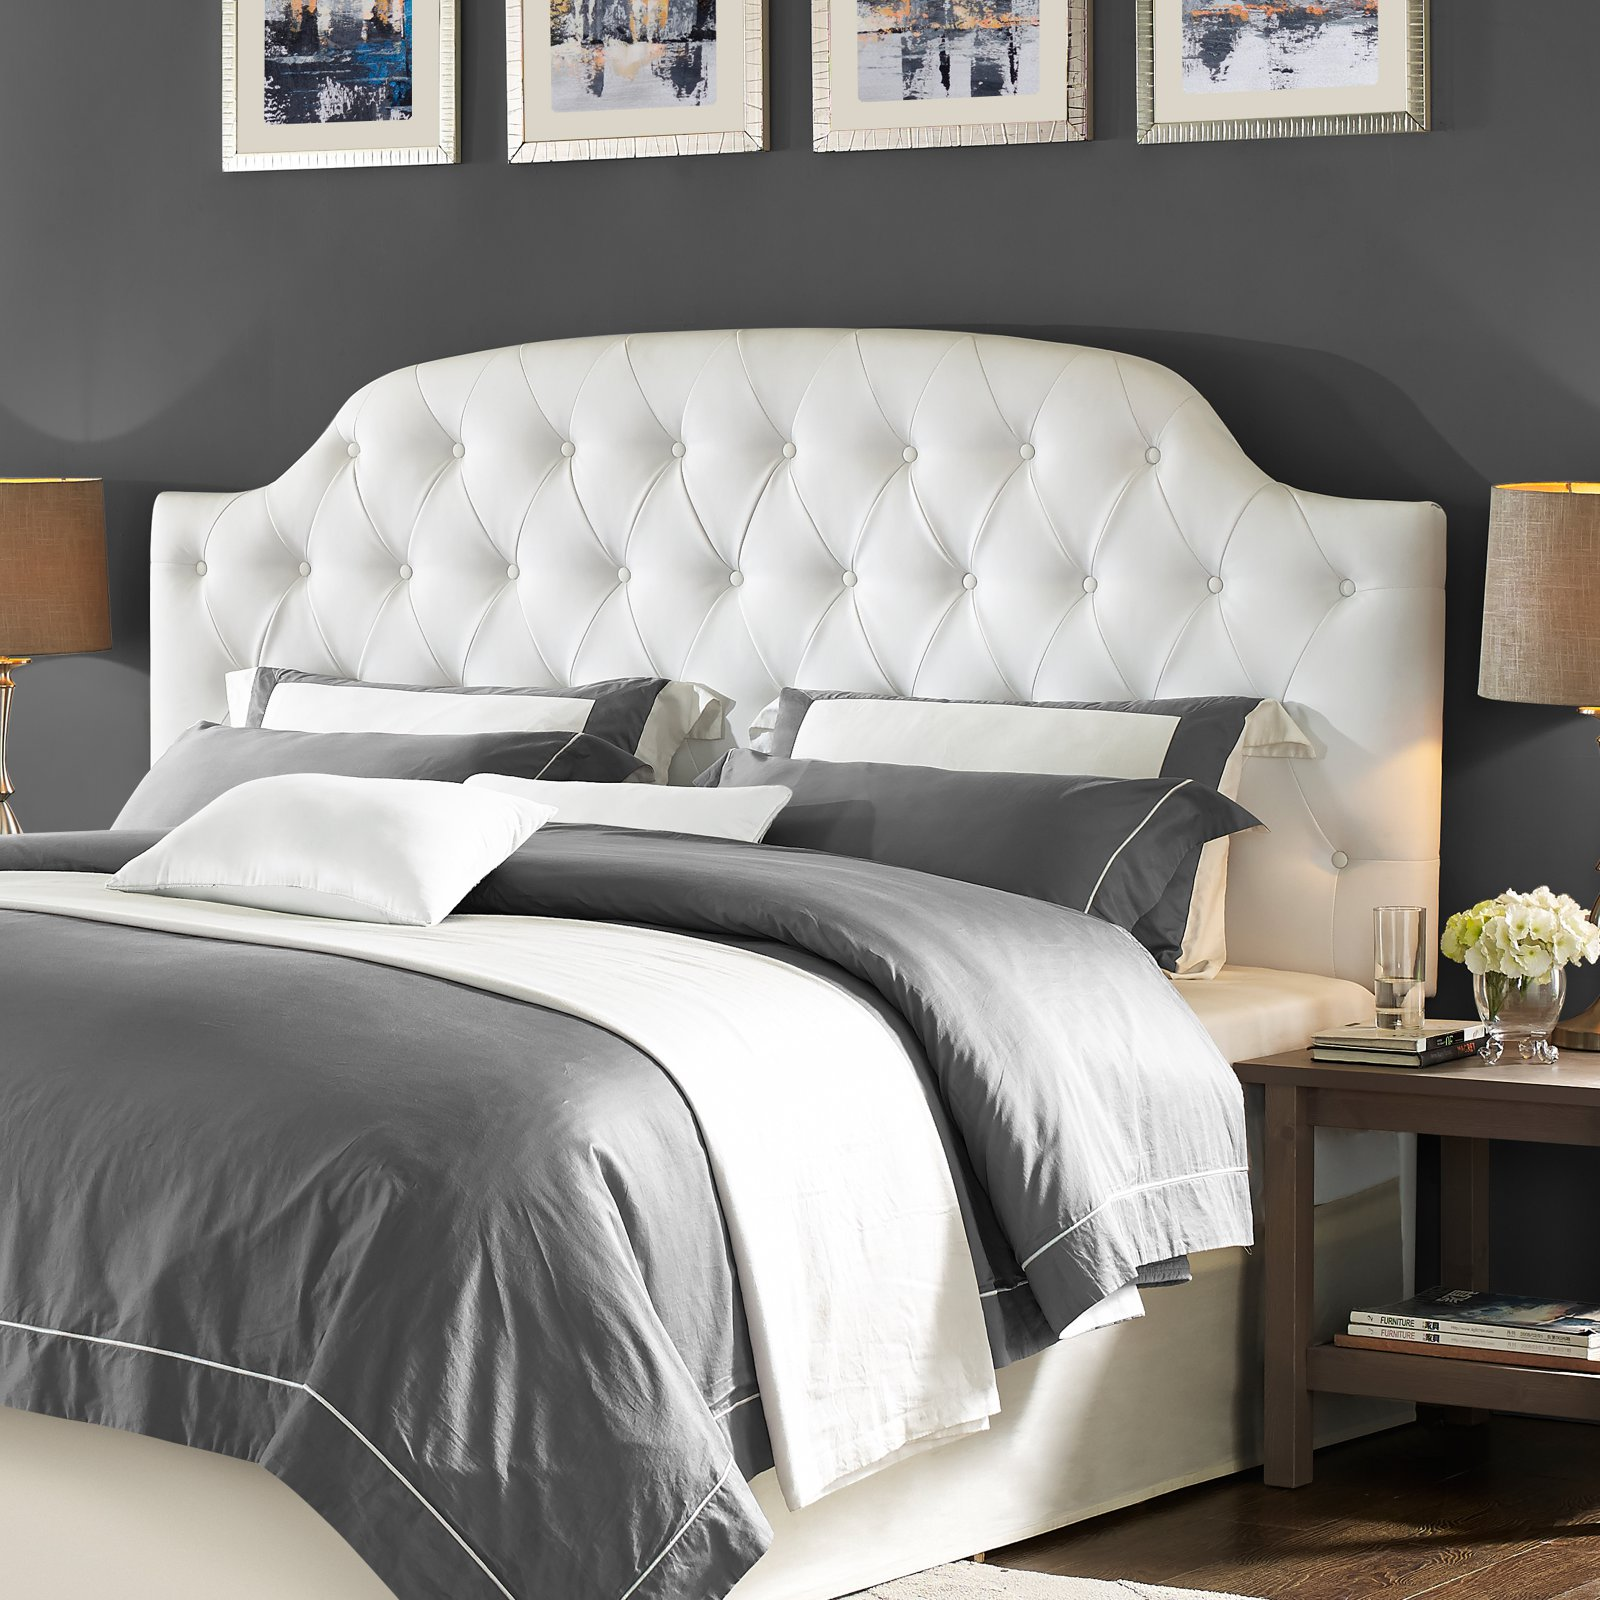 Dorel Living Lyric Button Tufted Faux Leather King Headboard, White